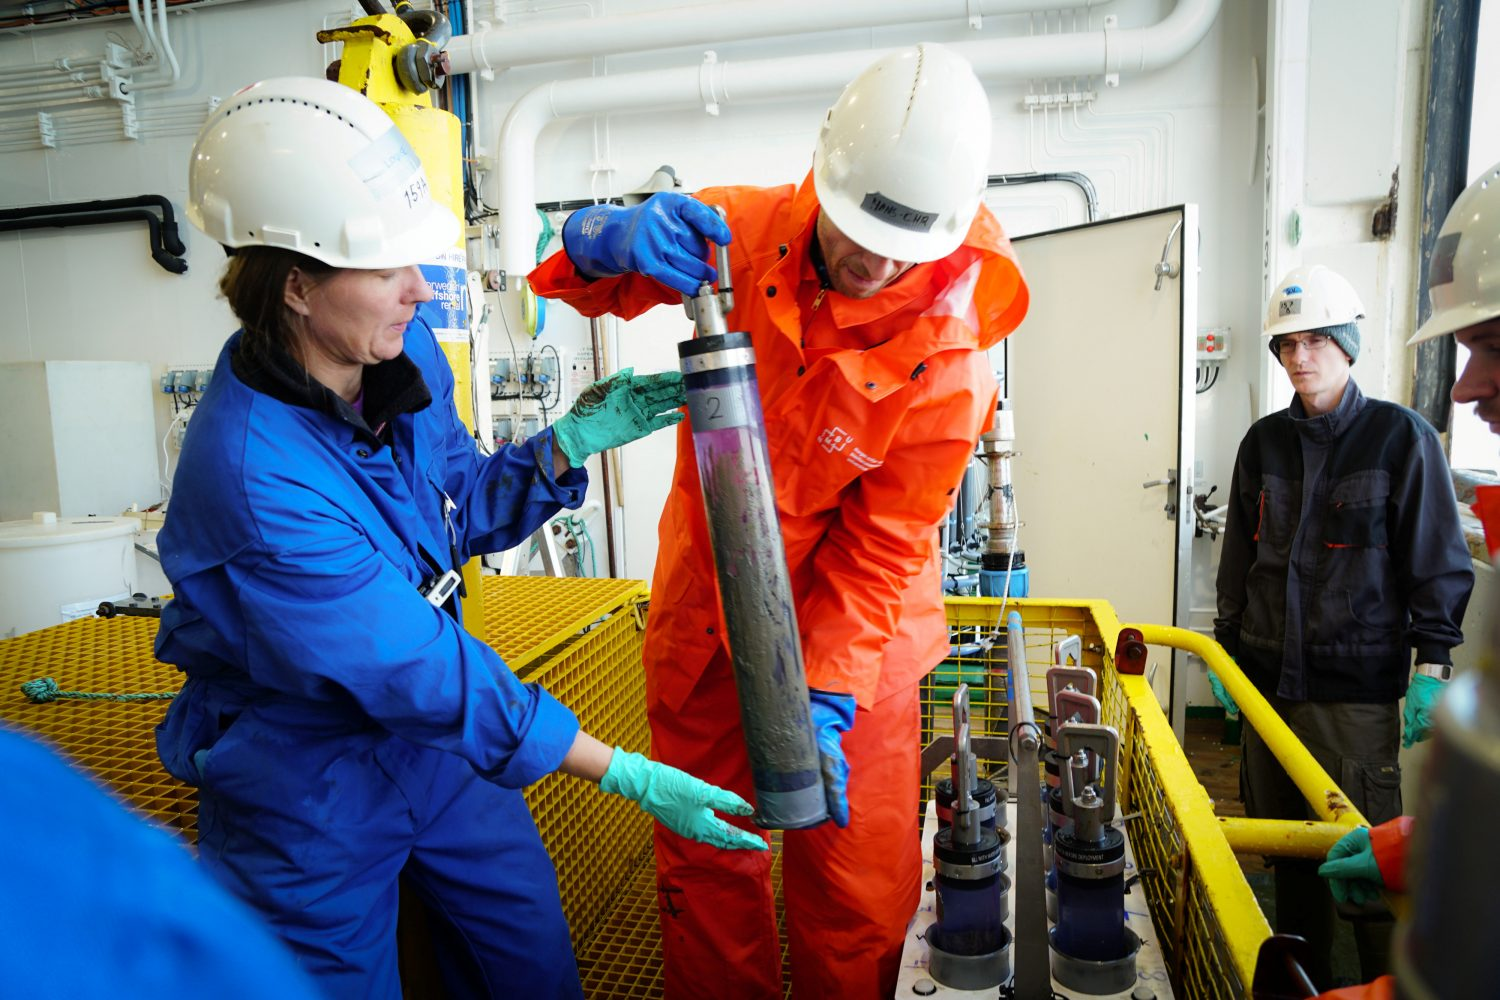 "Louise Kiel Jensen (DSA) and Hans-Christian Teien (NMBU) take samples from the Soviet nuclear submarine ""Komsomolets"", to be analyzed for radioactive substances, southwest of Bear Island in the Norwegian Arctic, Norway in this handout image released on July 10, 2019. Stine Hommedal/Norwegian Institute of Marine Research/HI/Handout via REUTERS"